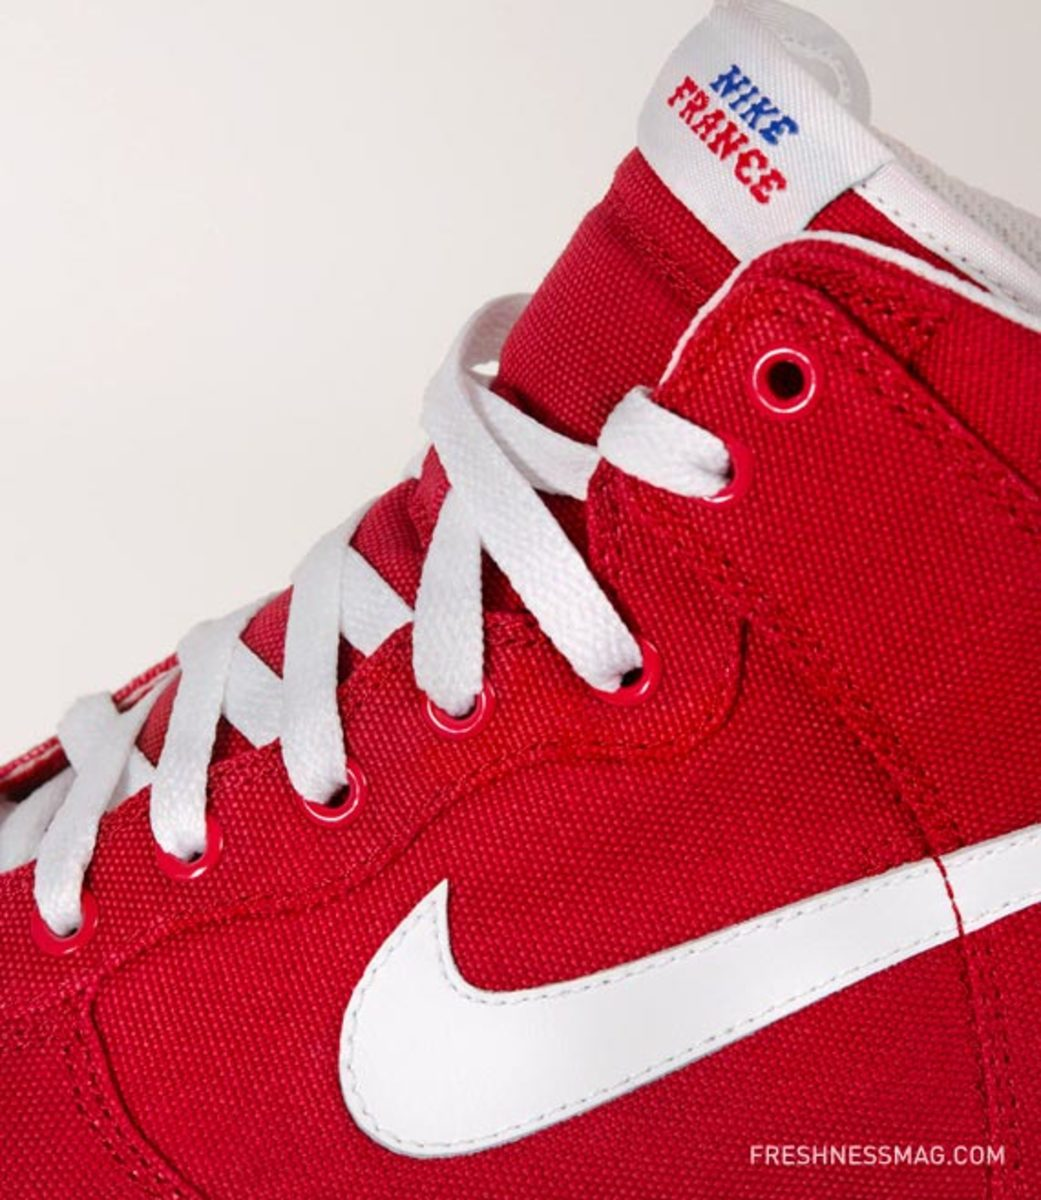 Nike Sportswear - Spring/Summer 2010 - Six (6) Collaboration - France - So Me